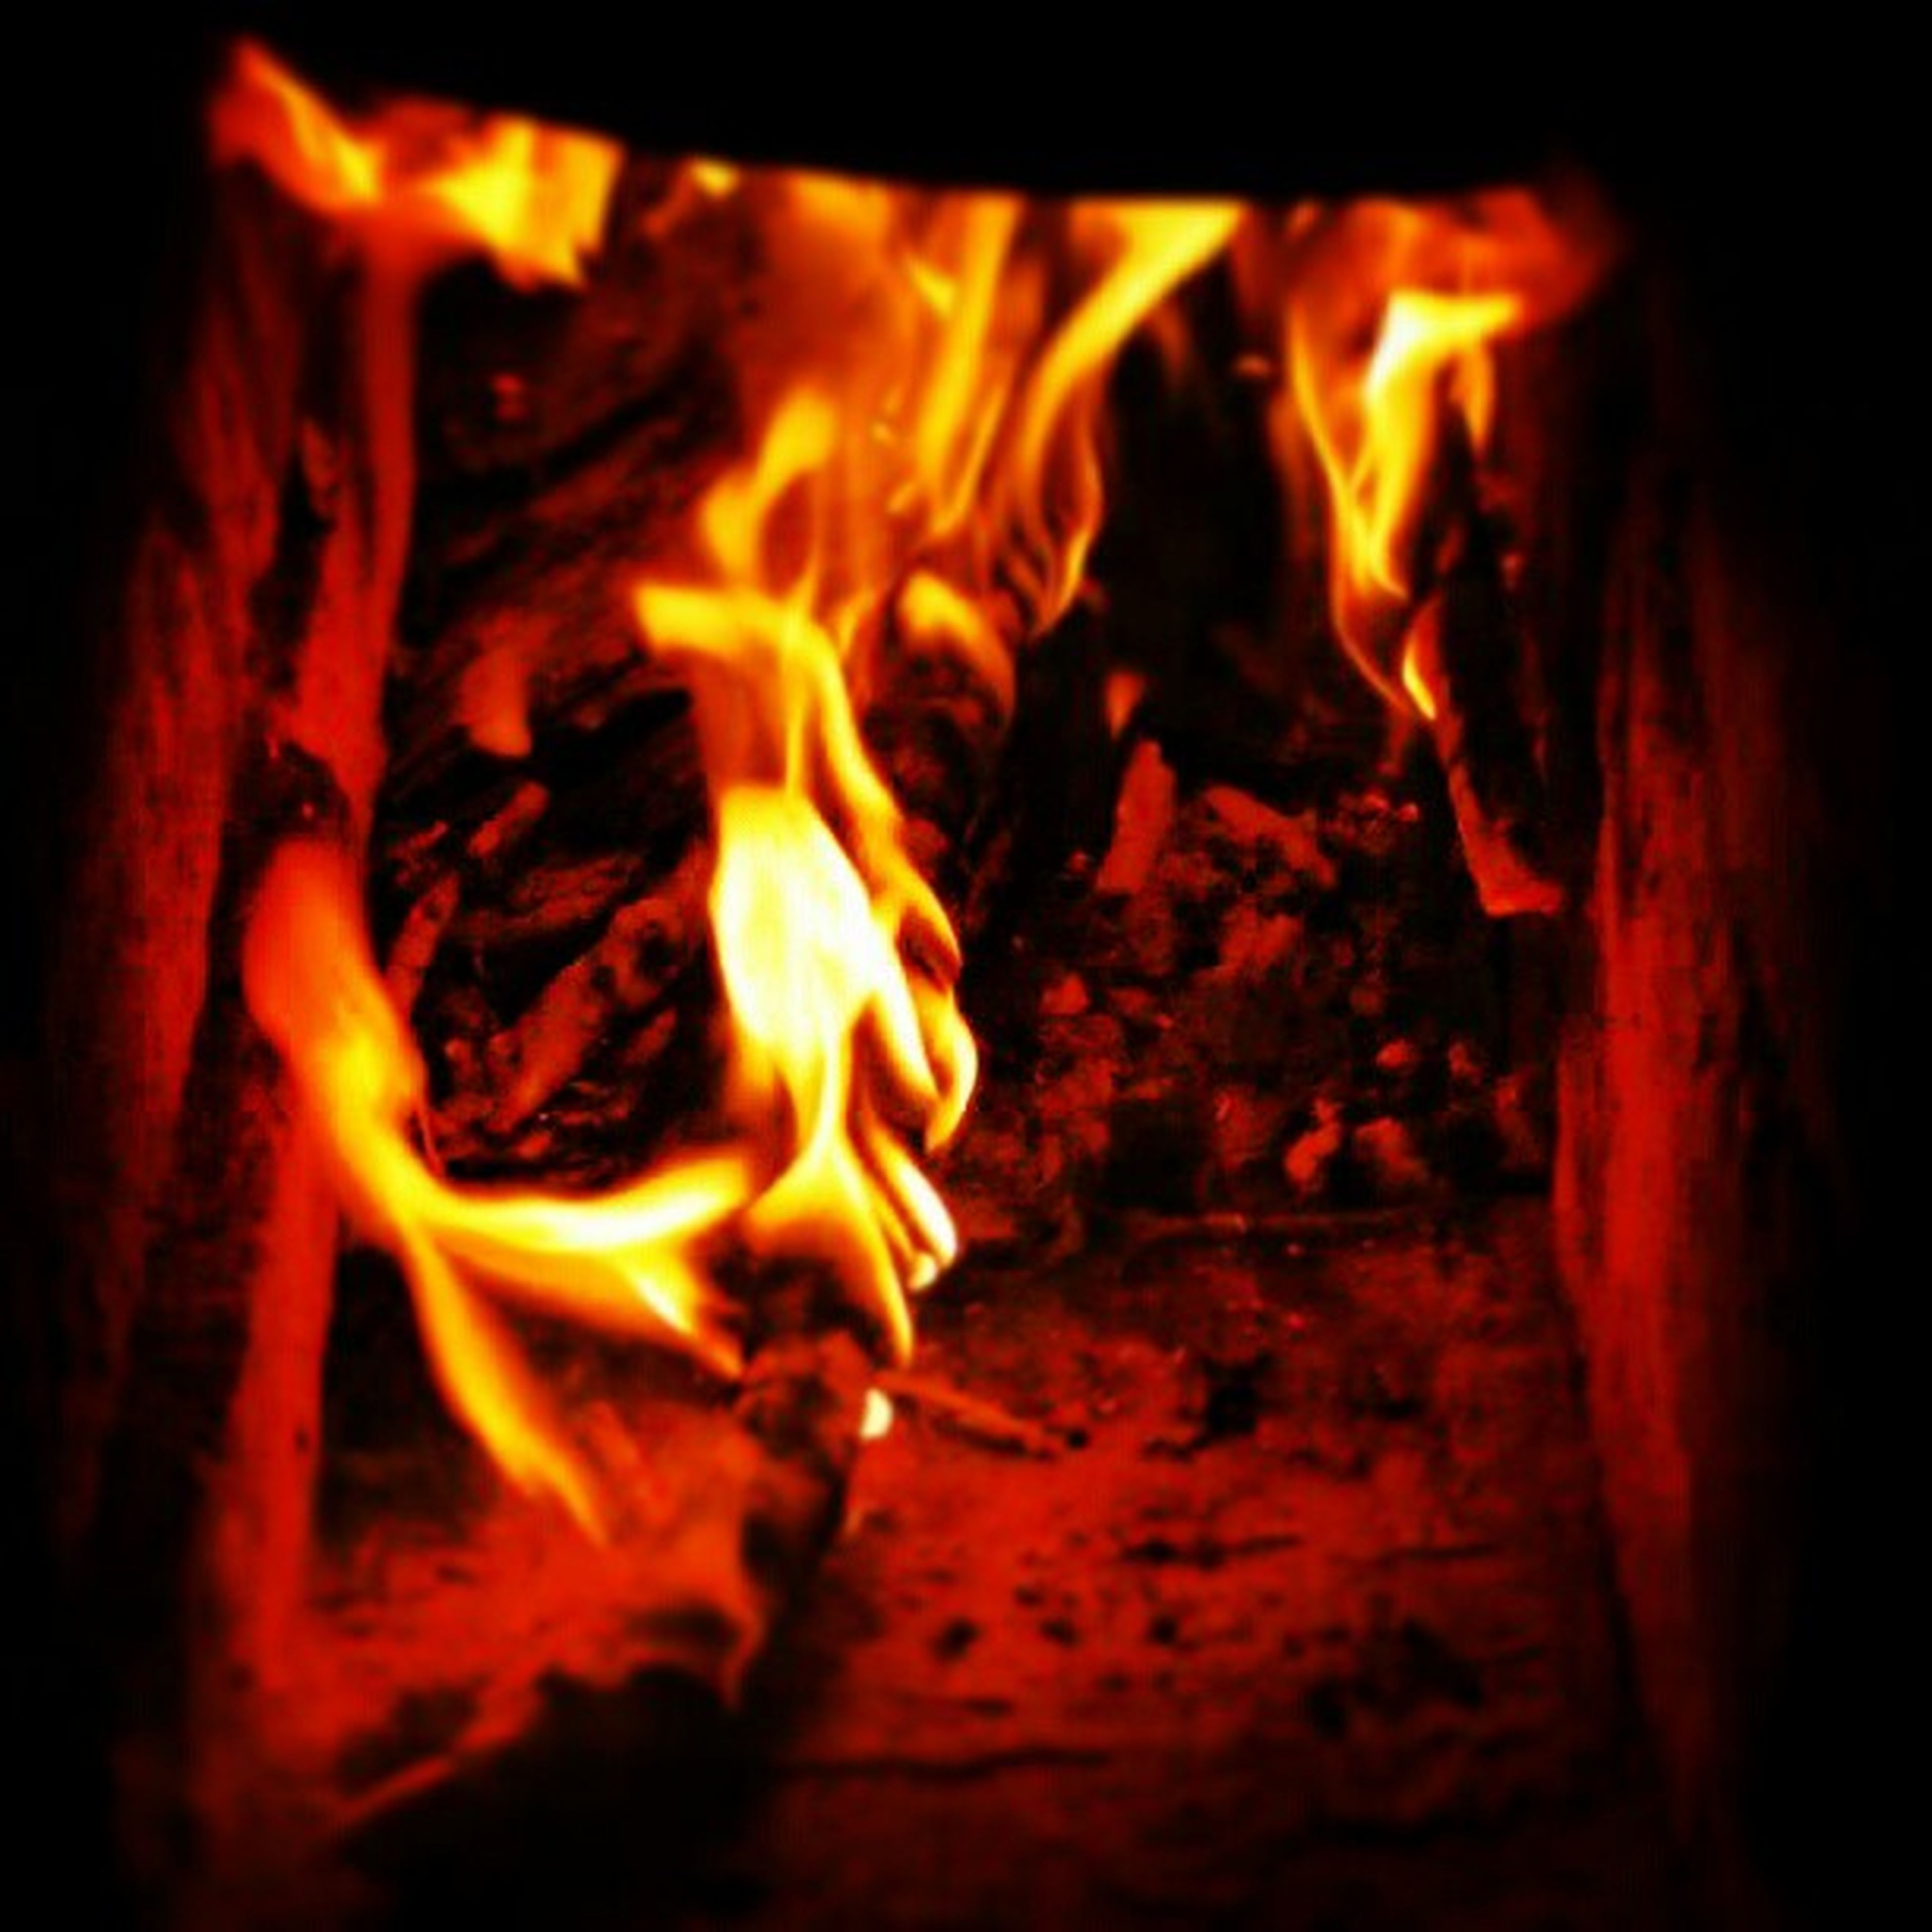 burning, flame, heat - temperature, fire - natural phenomenon, glowing, firewood, bonfire, fire, wood - material, orange color, close-up, night, indoors, heat, campfire, motion, dark, wood, light - natural phenomenon, no people